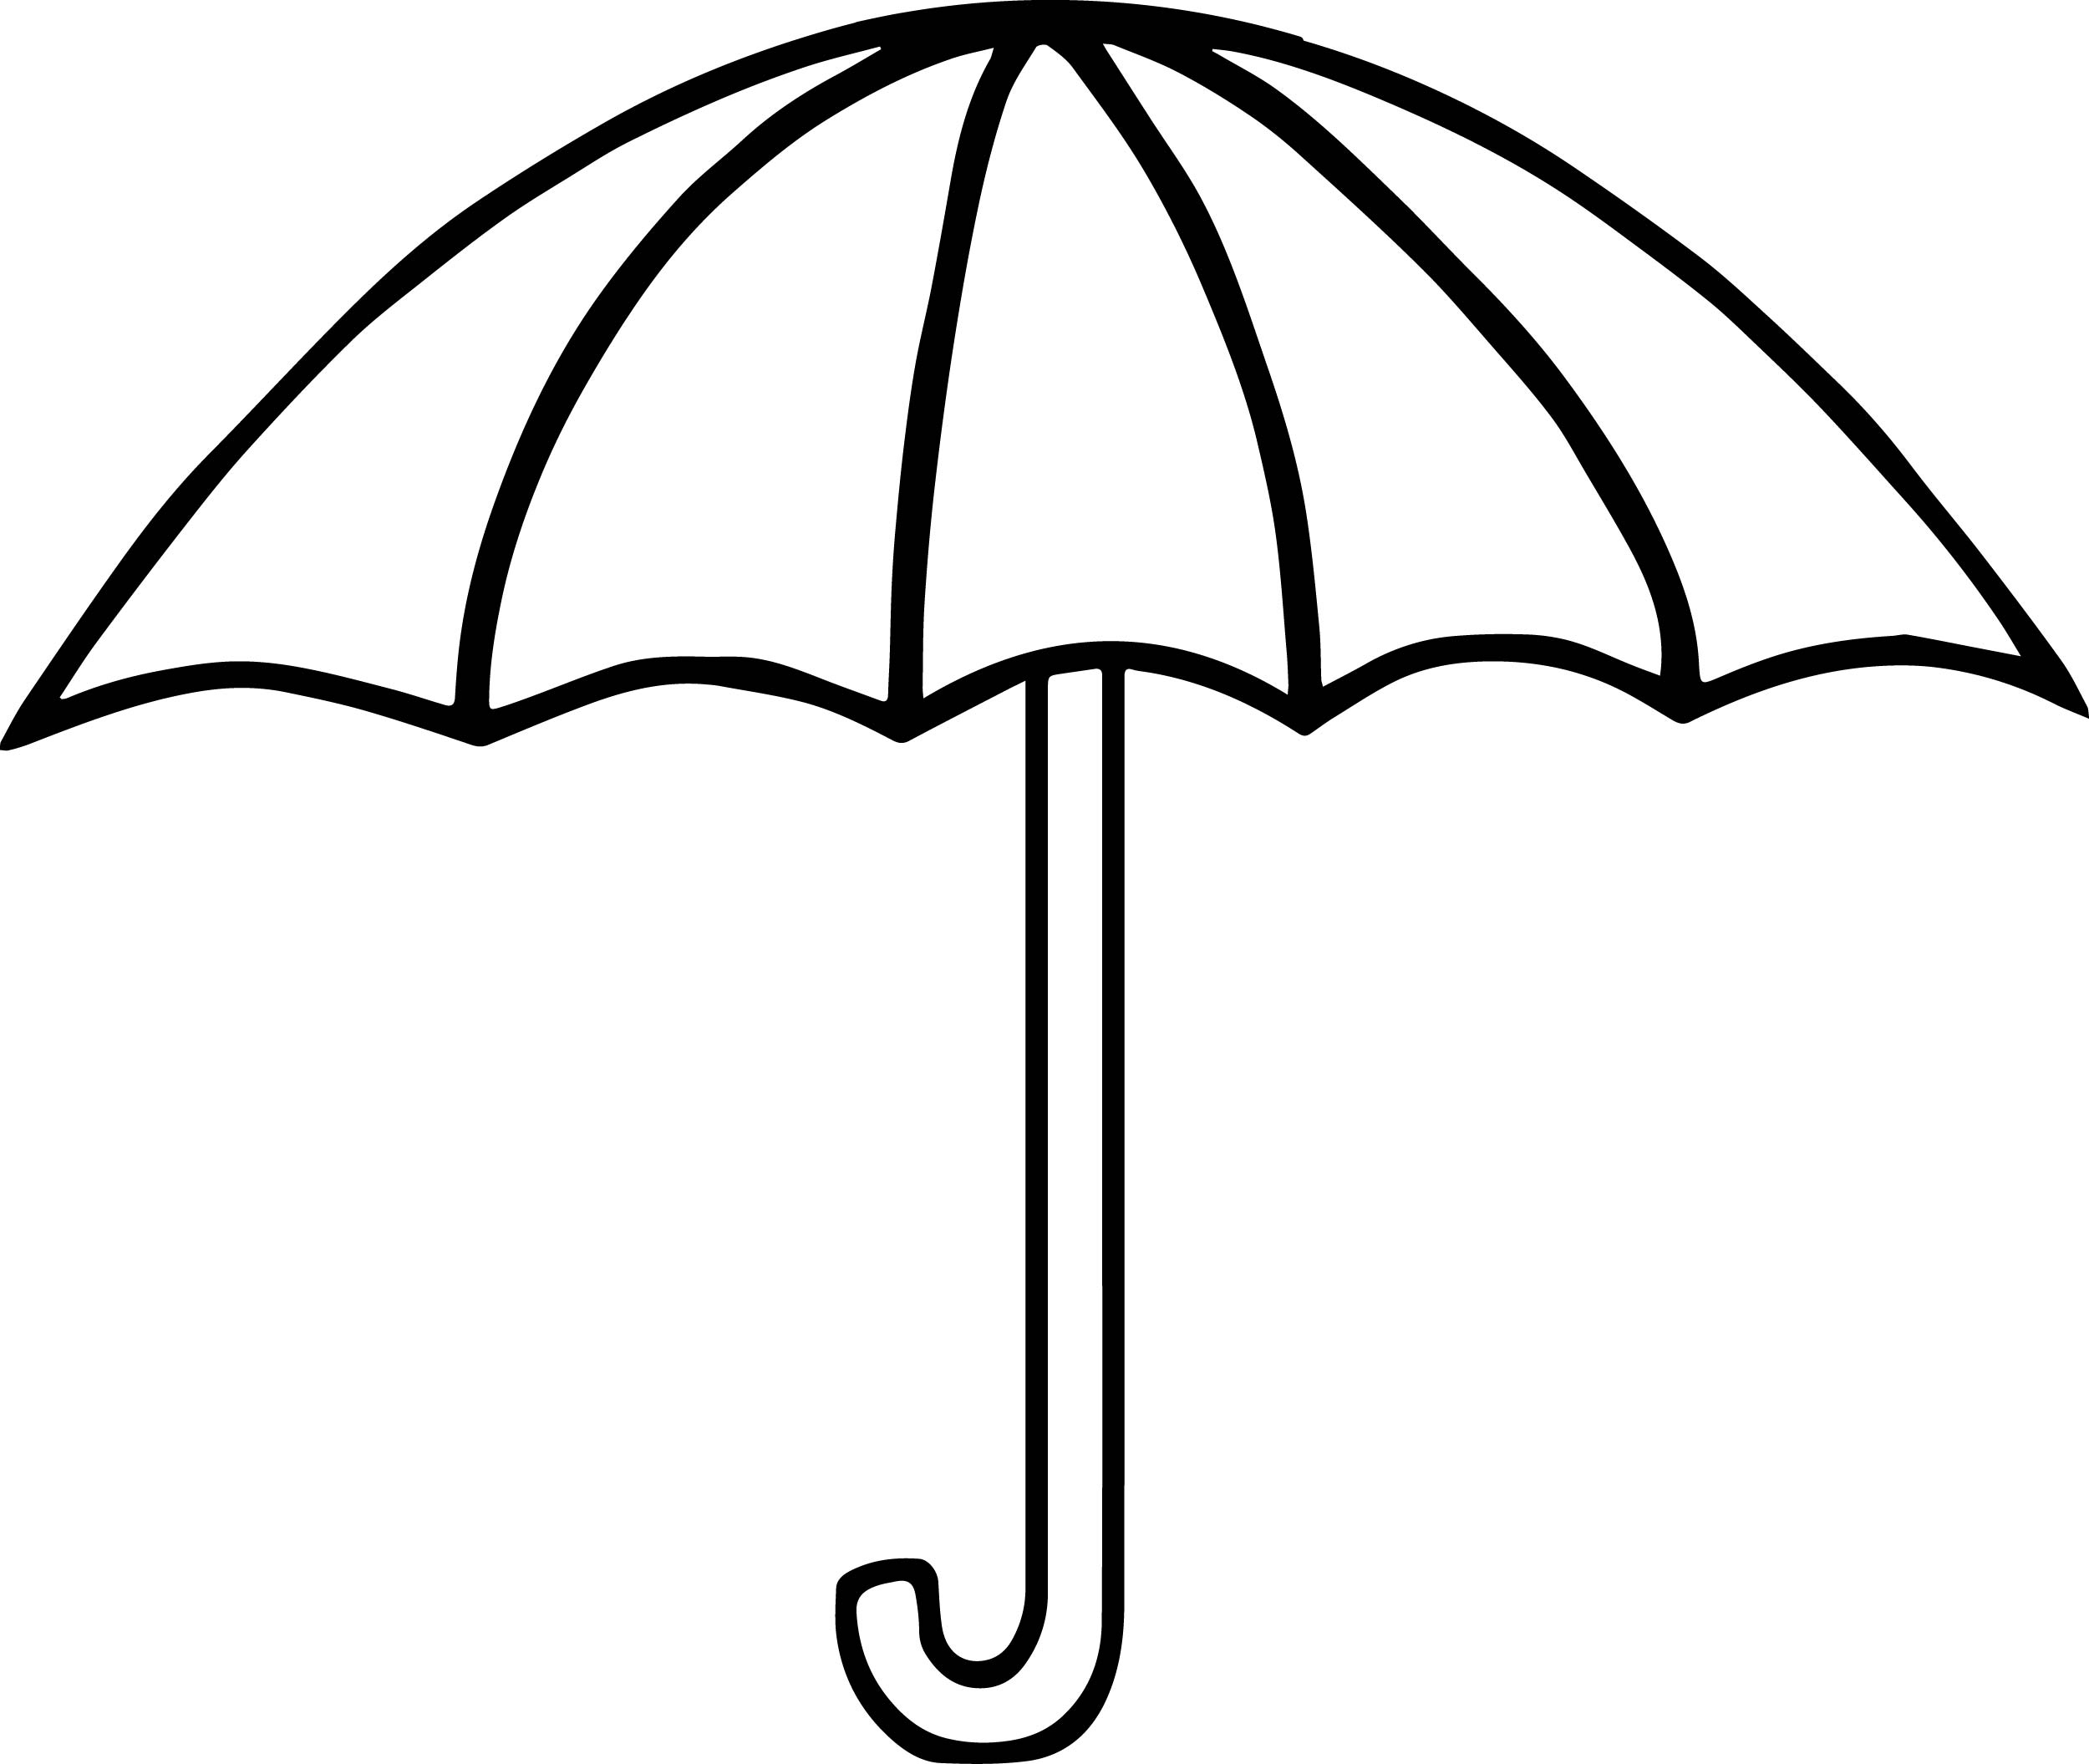 umbrella coloring page - summer umbrella coloring page